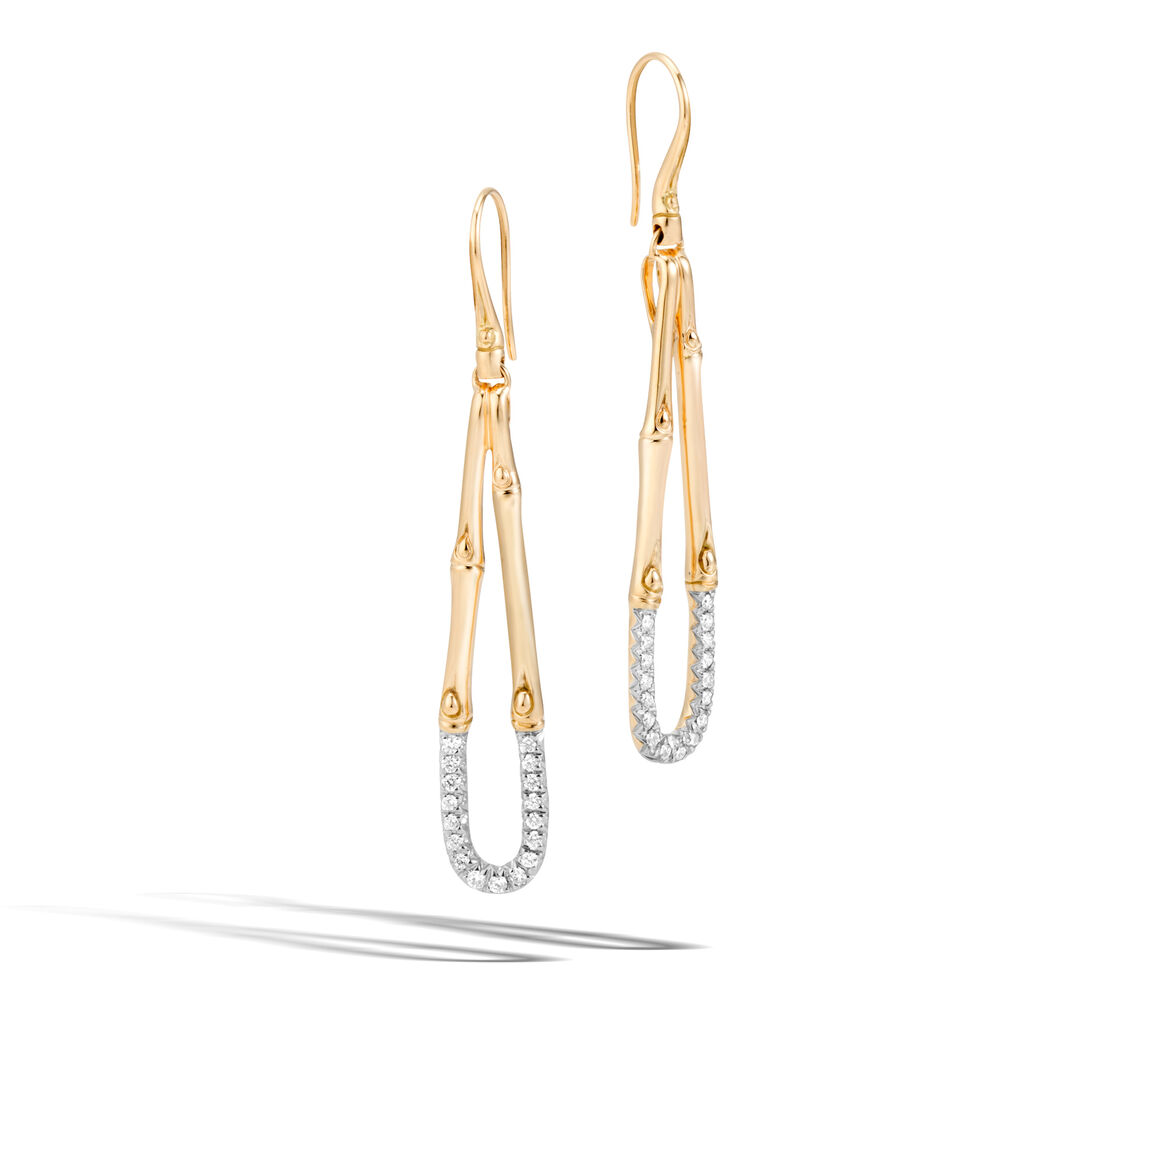 Bamboo Drop Earring in 18K Gold with Diamonds